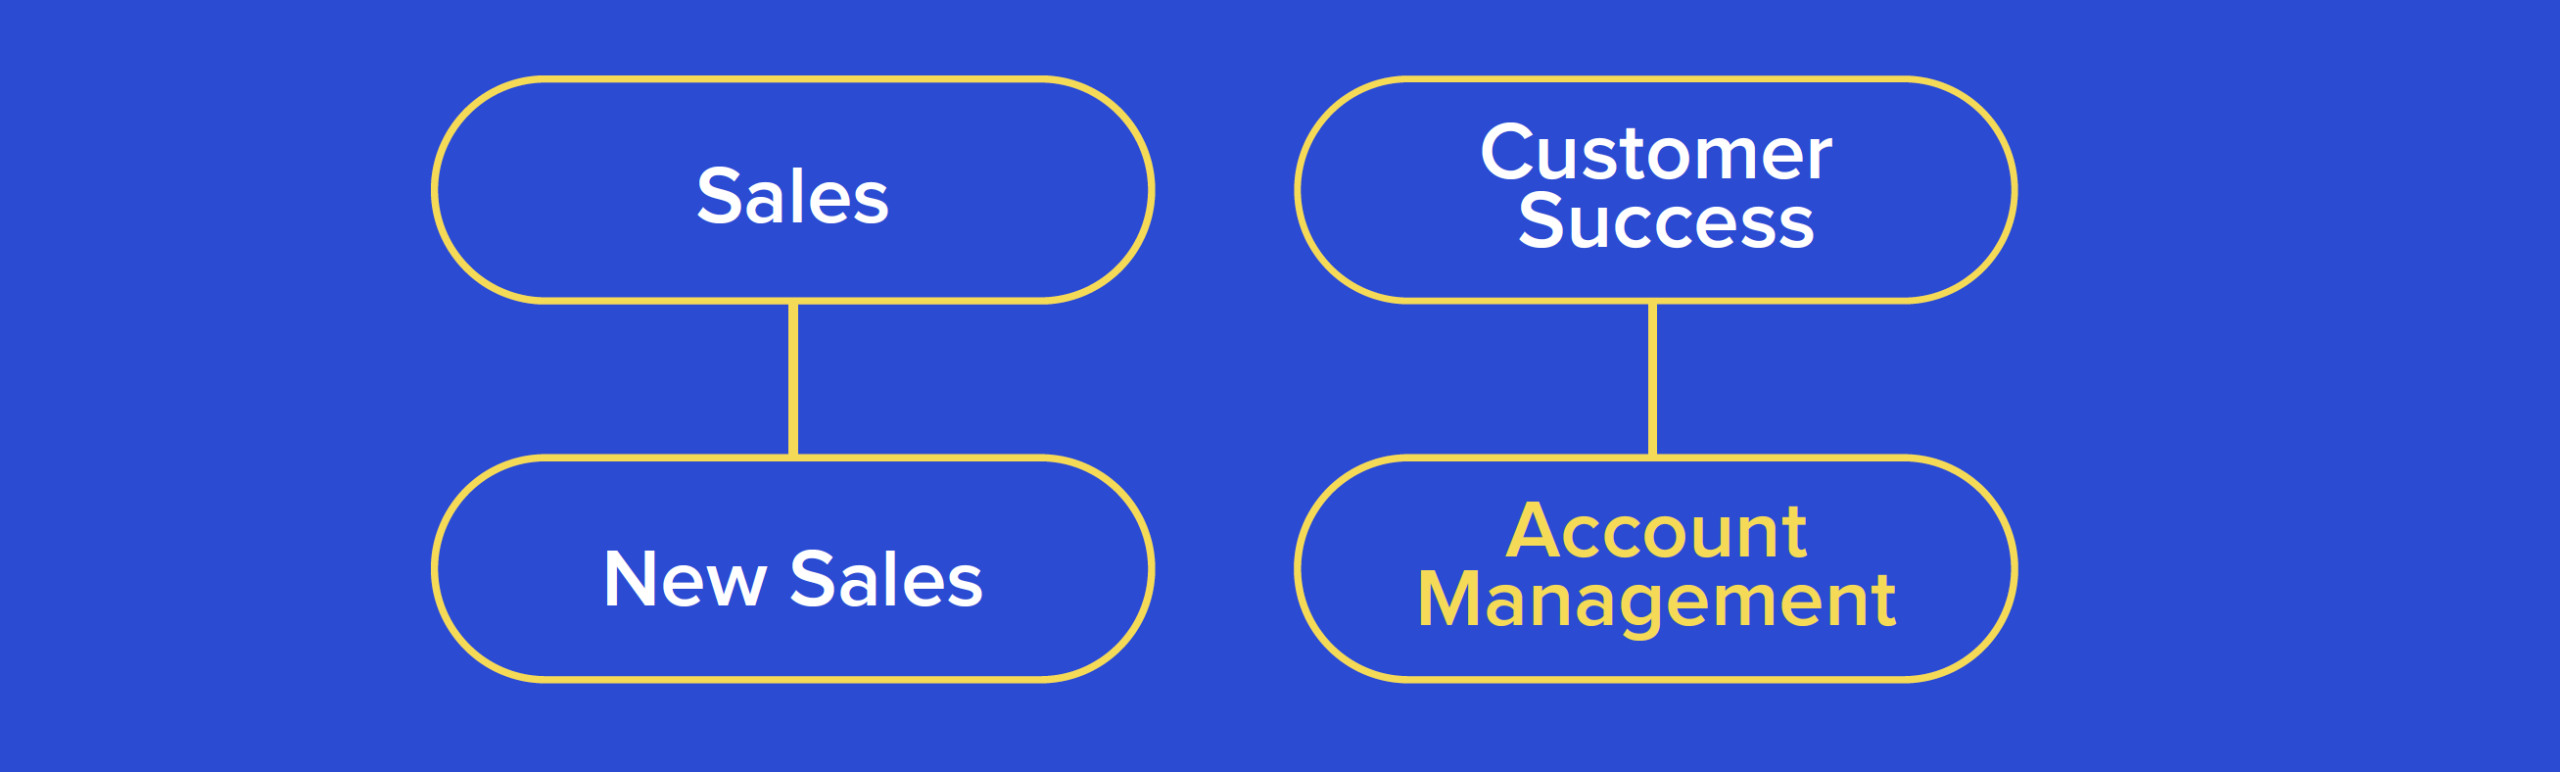 Org Structure  with Account Management under Customer Success